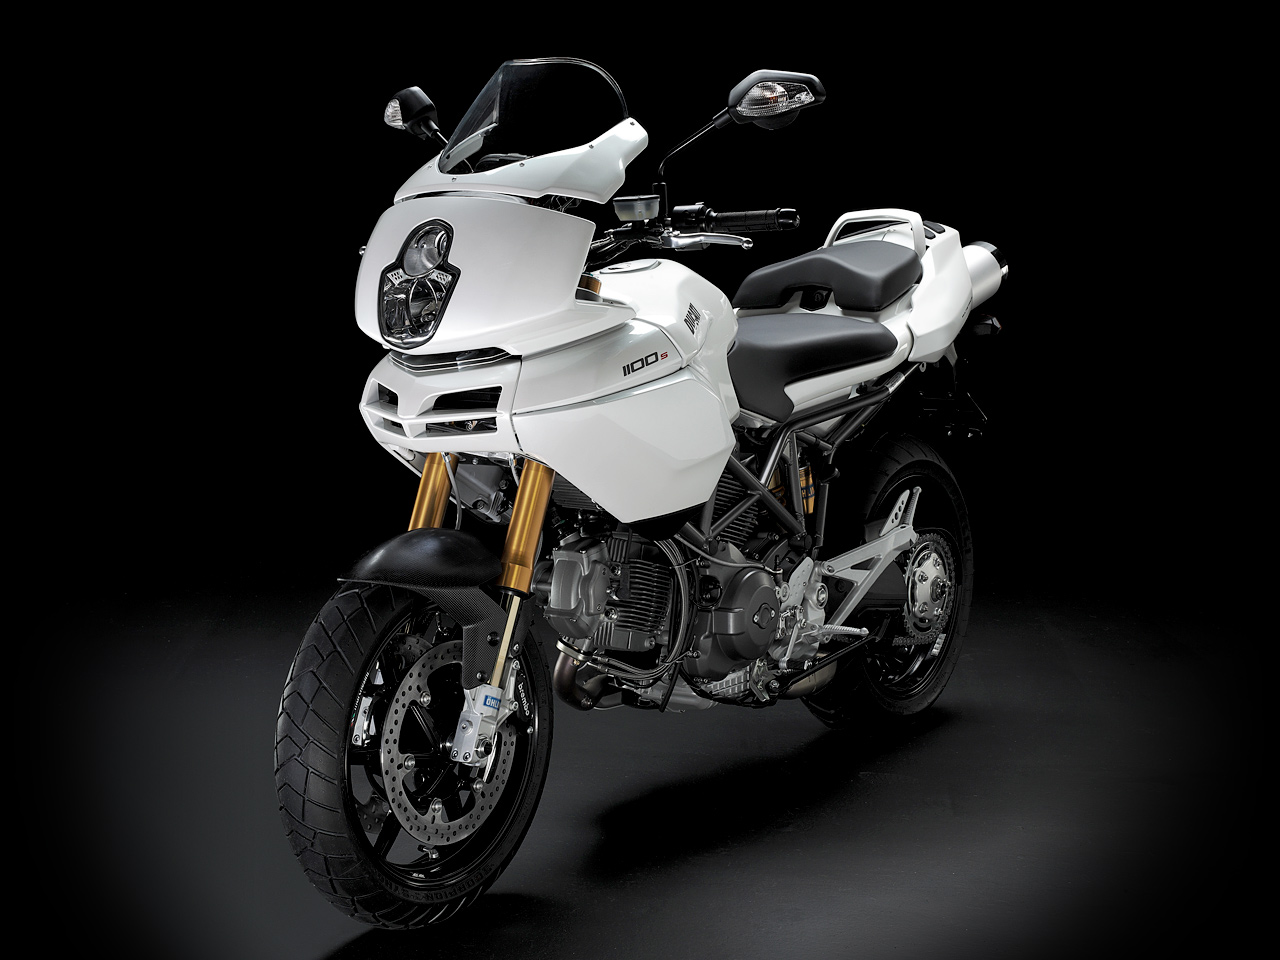 2009 ducati multistrada 1100 1100s top speed. Black Bedroom Furniture Sets. Home Design Ideas